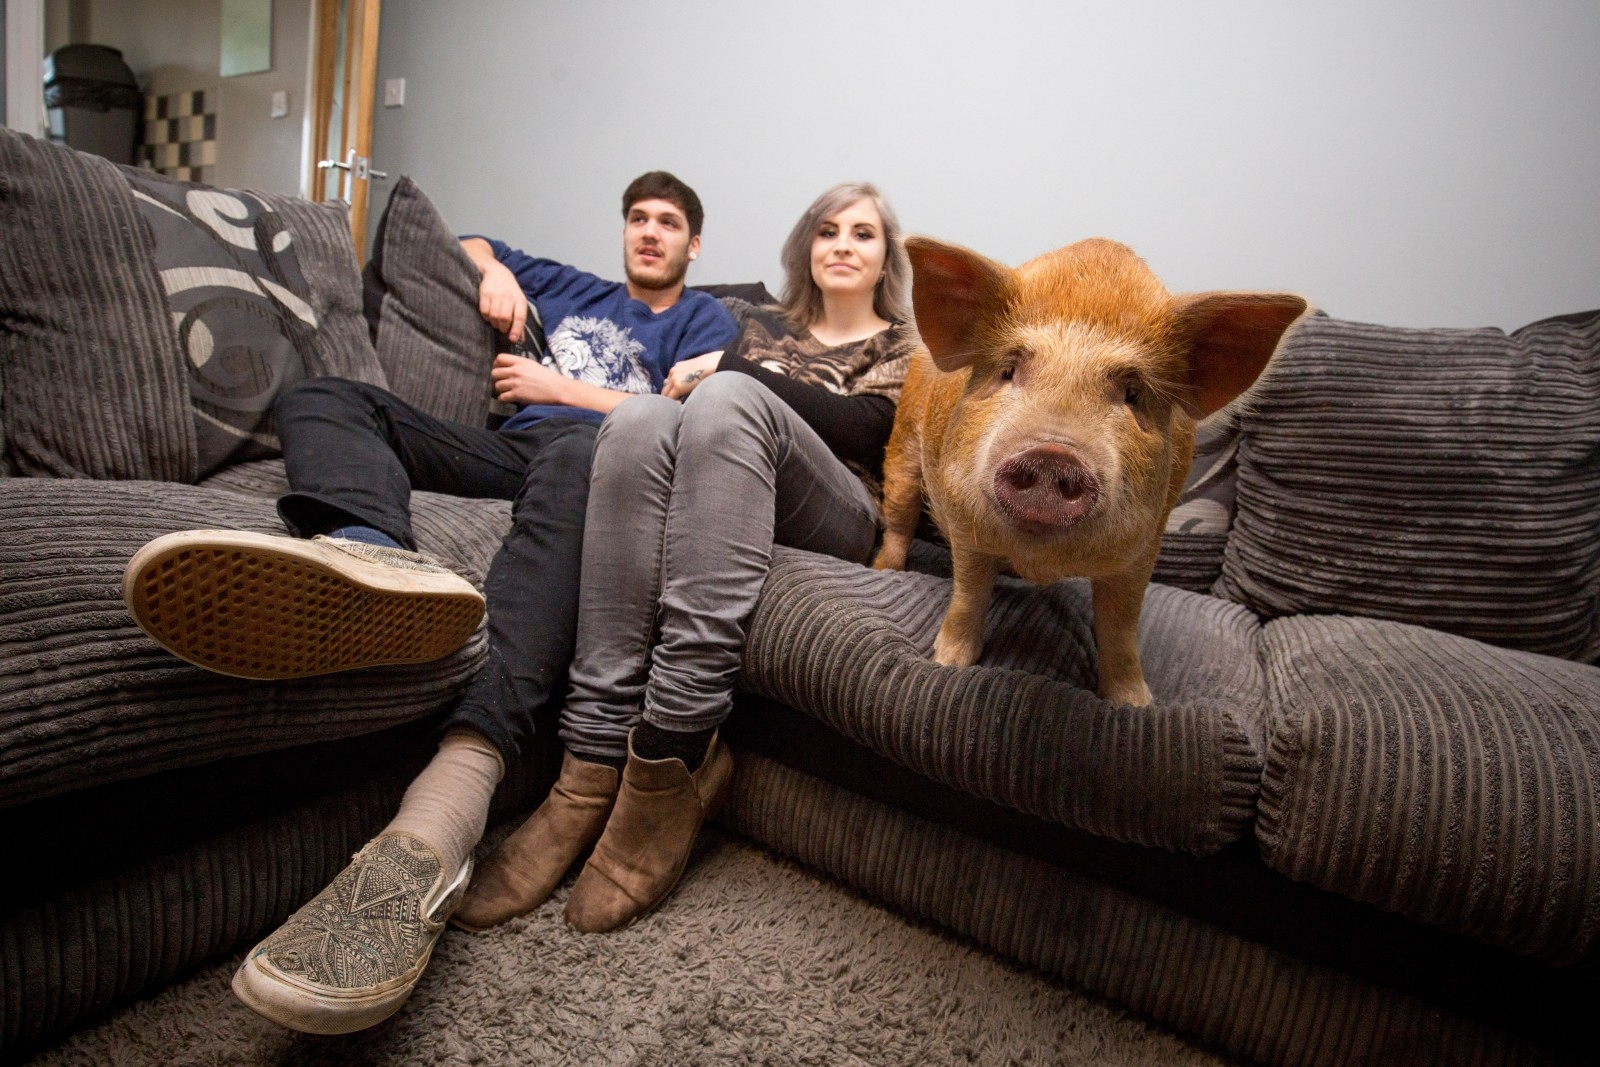 Pampered Pet Pig Spends Days Snuggled On The Sofa Watching